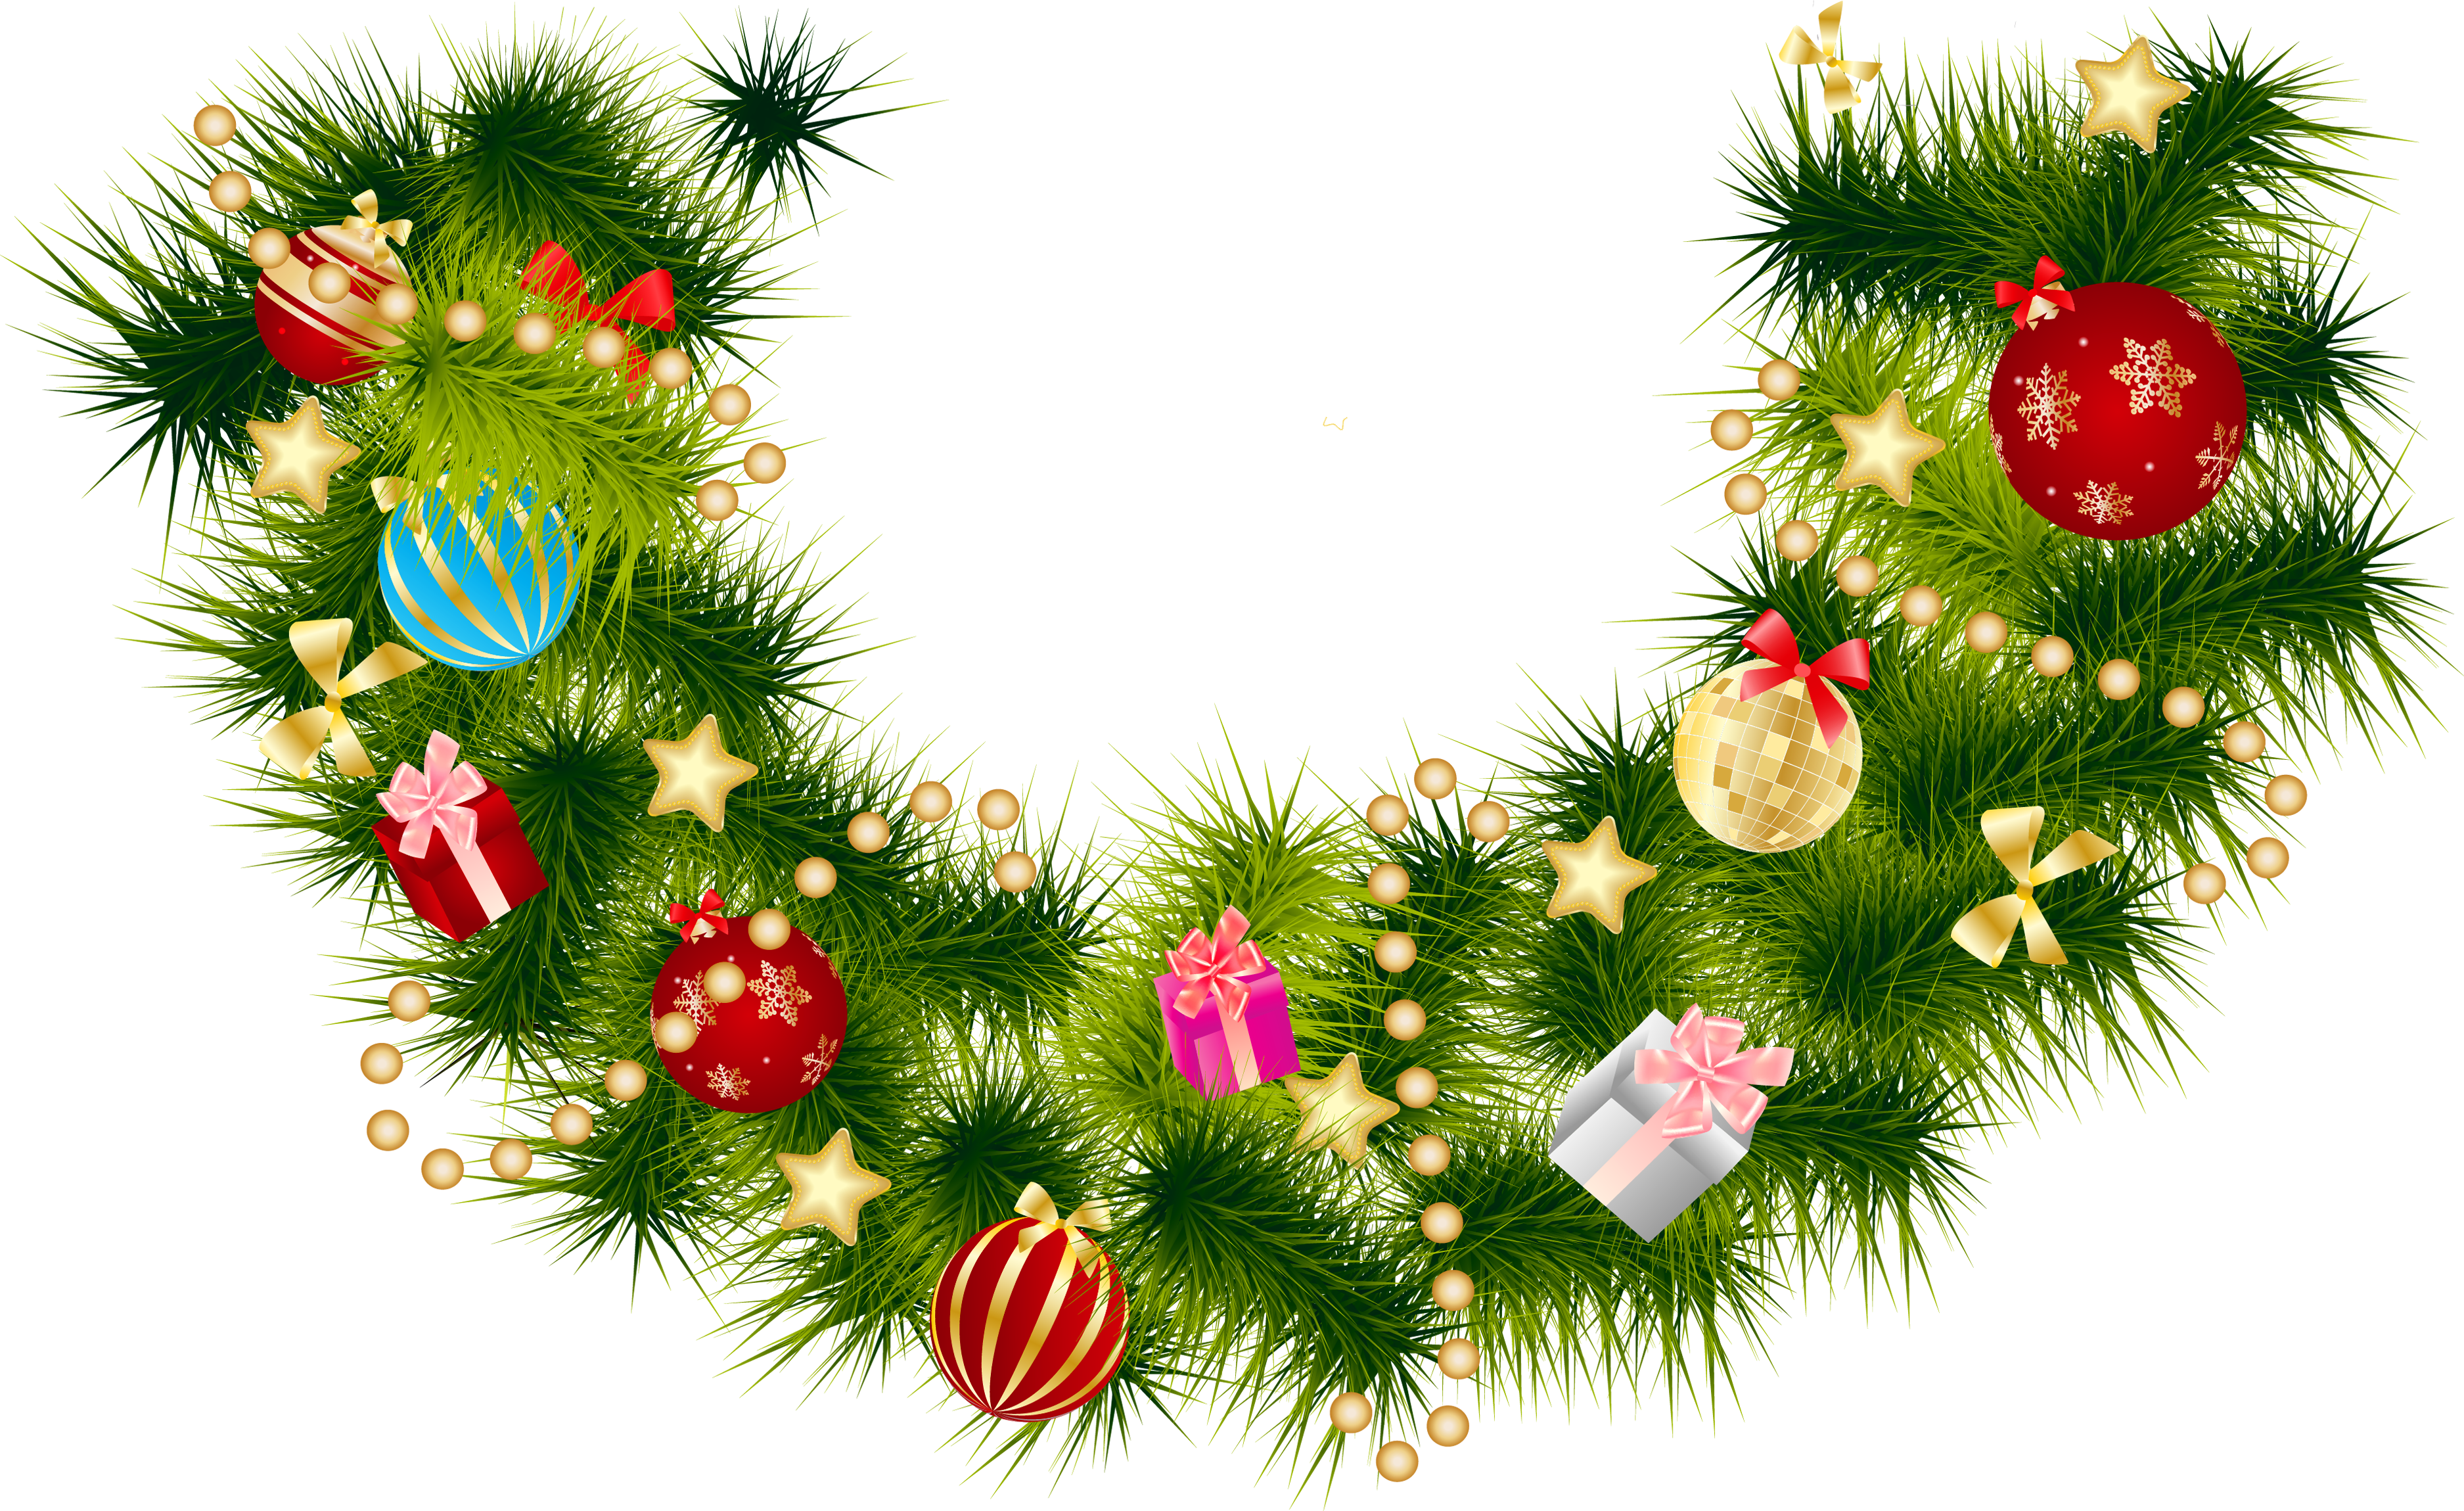 Vector hd christmas. Pine branch garland with